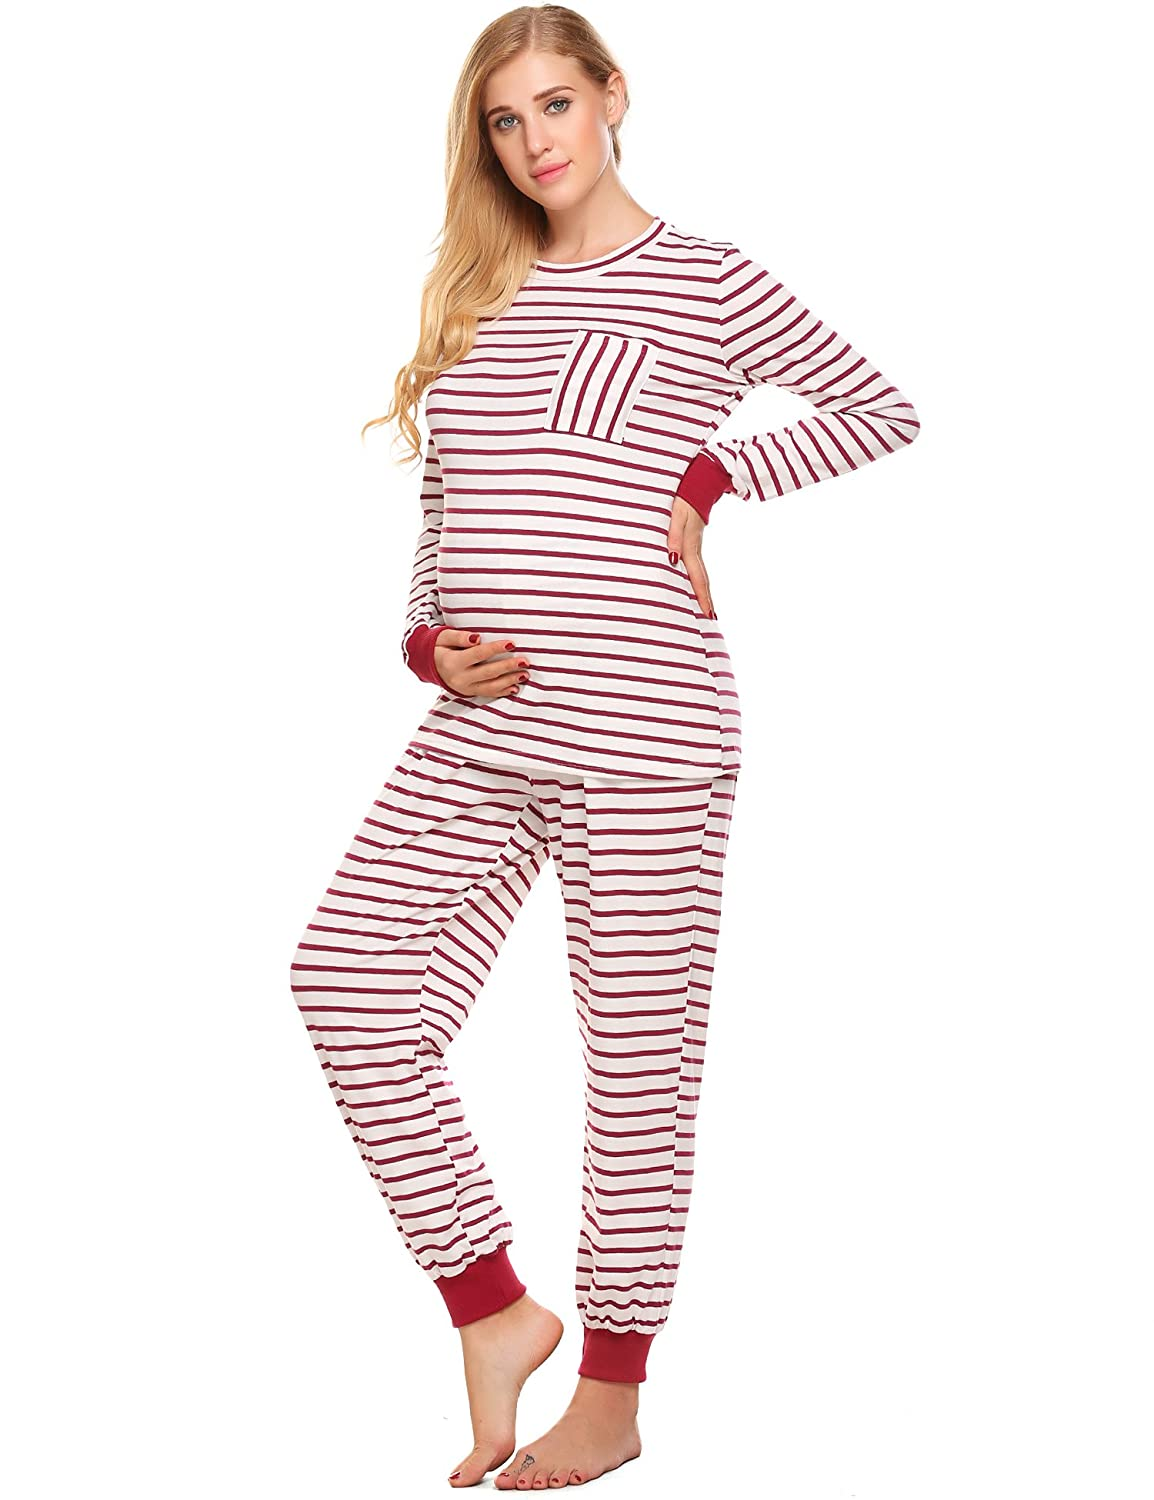 5eaf75d892353 Ekouaer Pregnant Women Stripe Pajama Set Soft Maternity&Nursing Cotton  Housewear(No Breastfeeding) EKK007404*